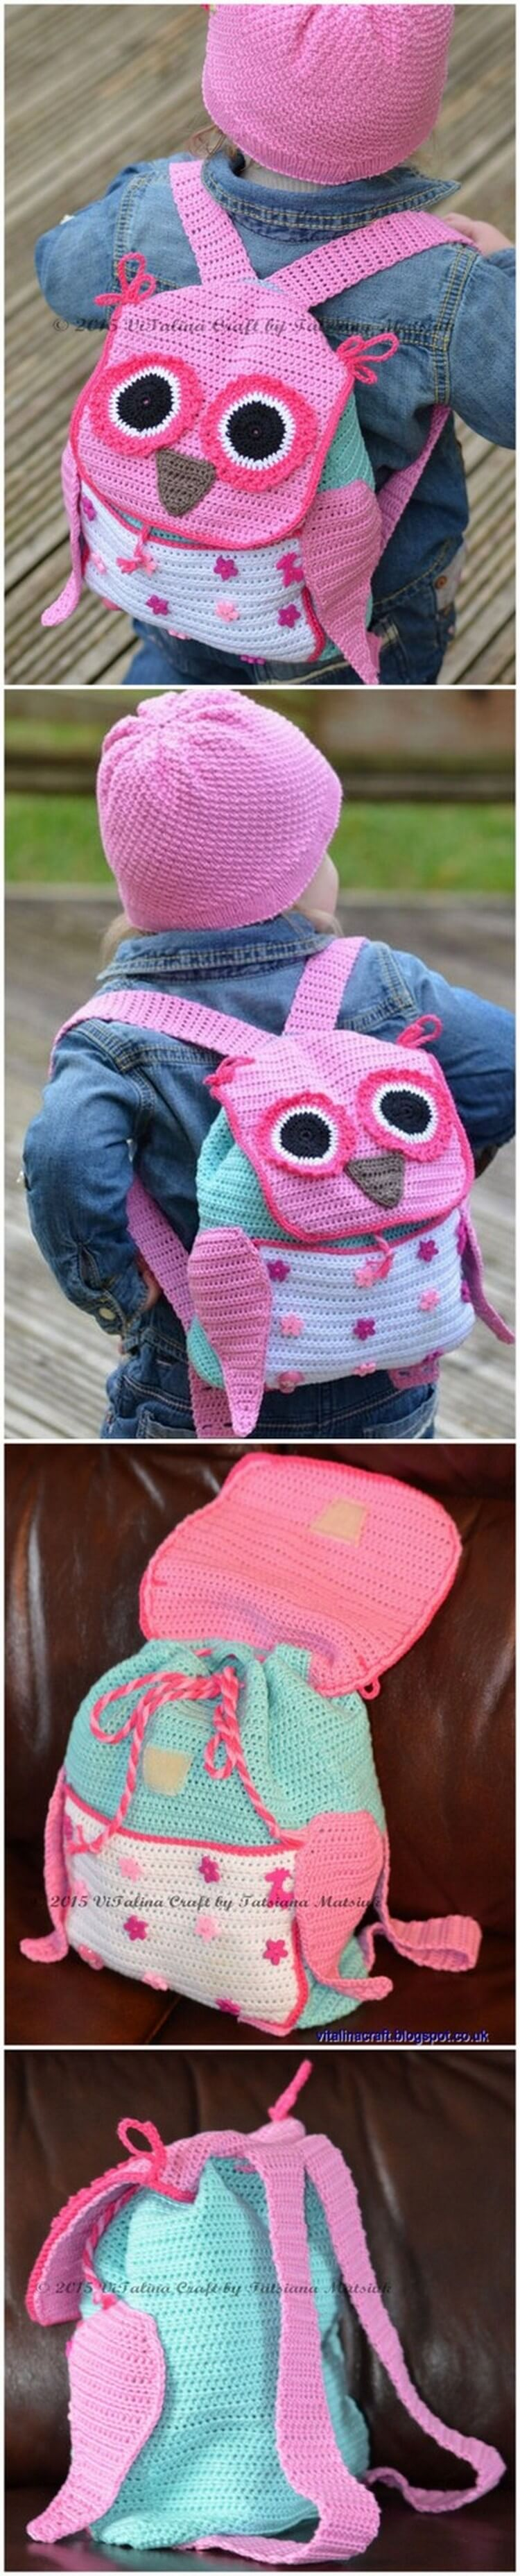 Crochet Backpack Pattern (81)